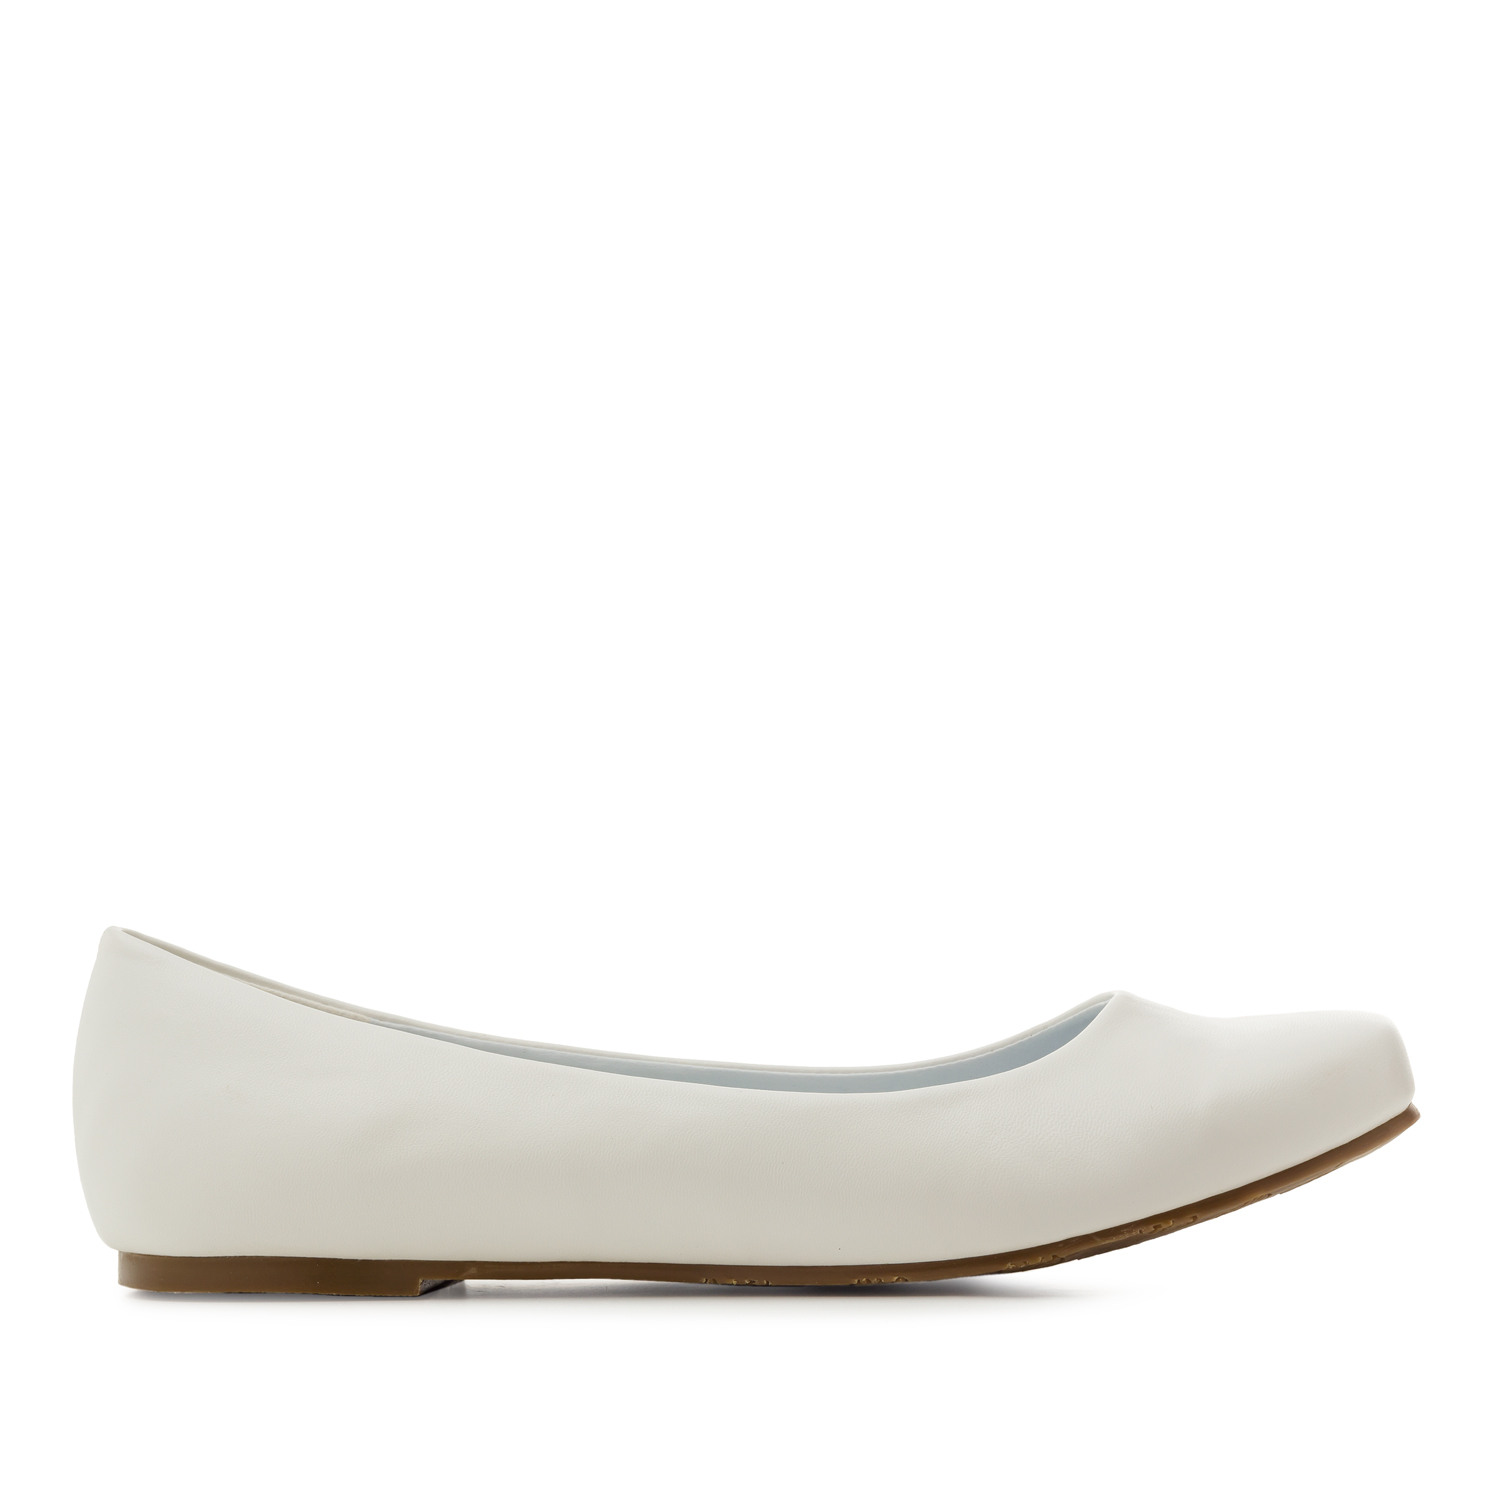 Classic Ballerinas in White faux Soft-Leather